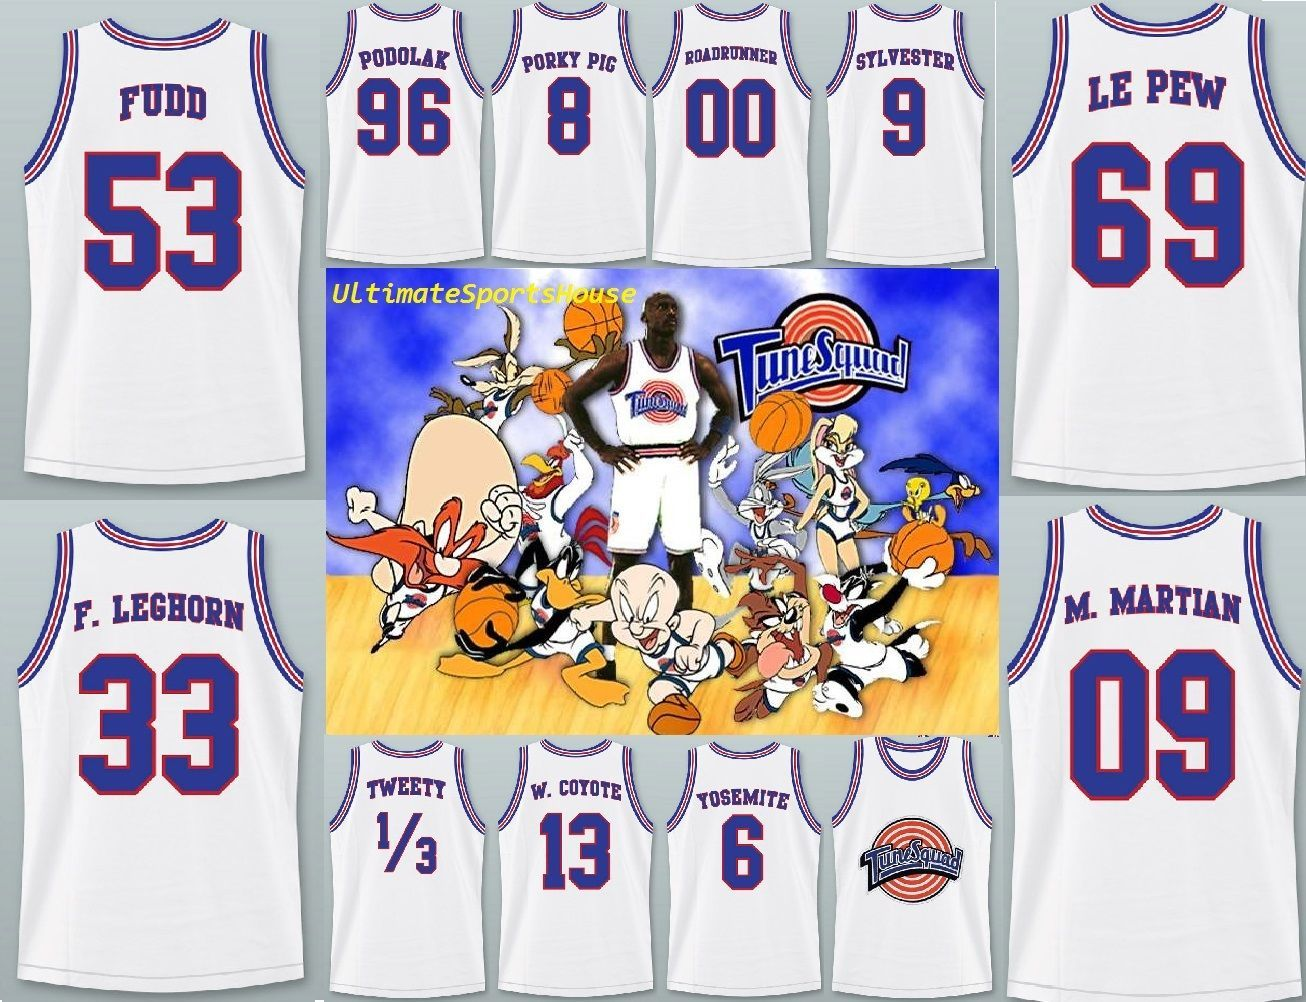 3a3cc863dbb S l1600. S l1600. Previous. Space Jam Basketball Jersey Tune Squad Retro  Stitched Top Embroidered White Rare